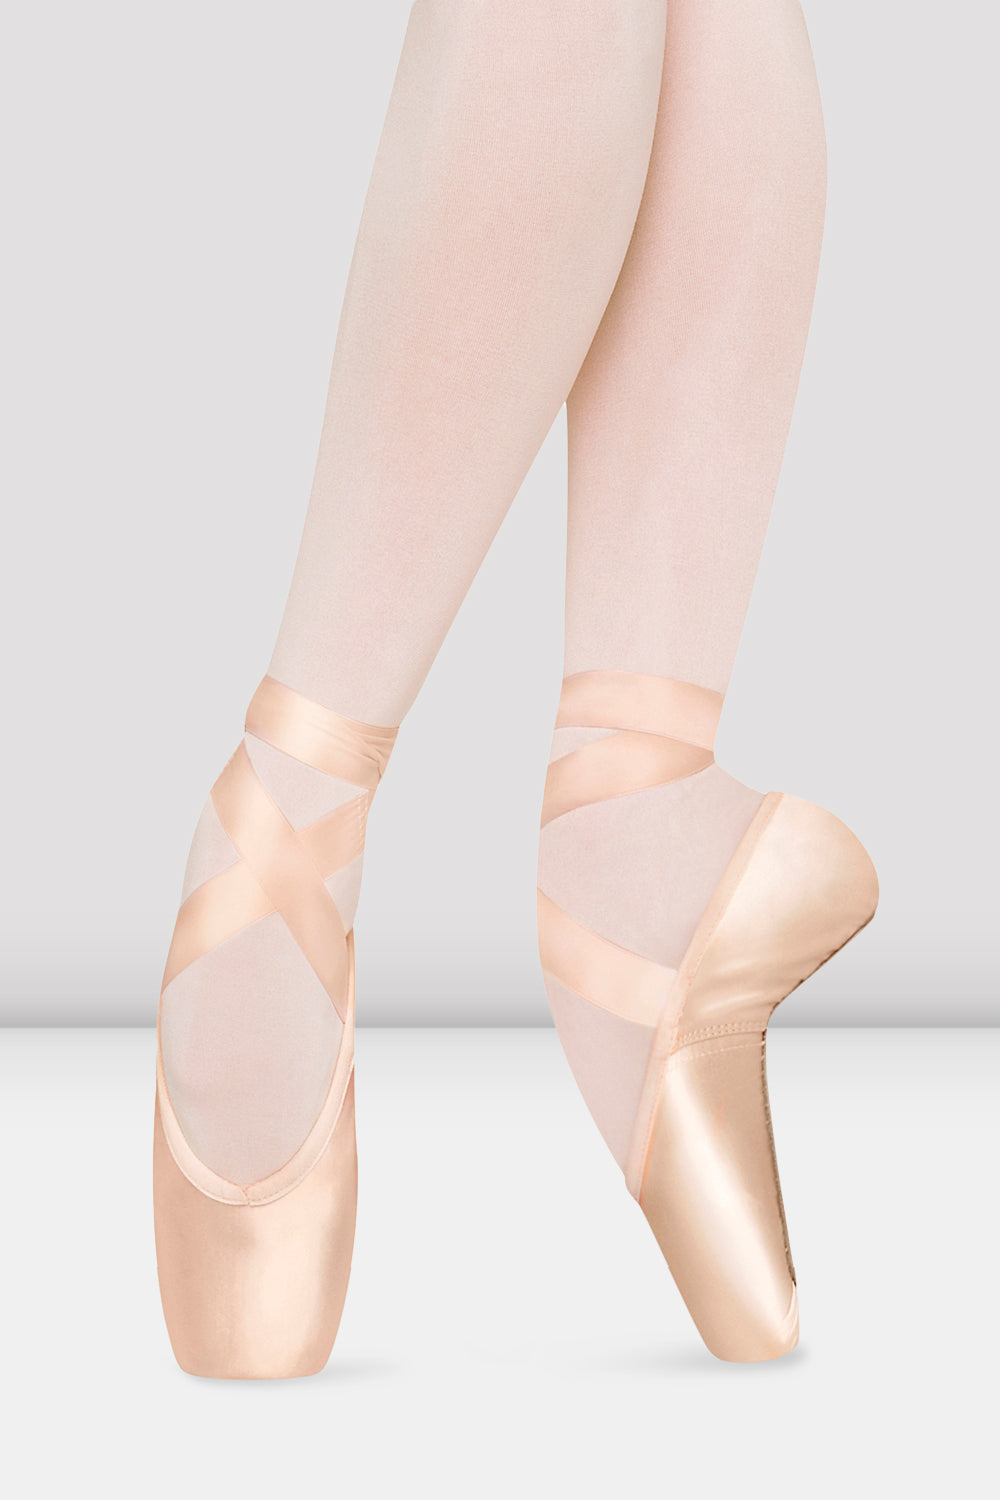 Synergy Full Shank Pointe Shoes, Pink